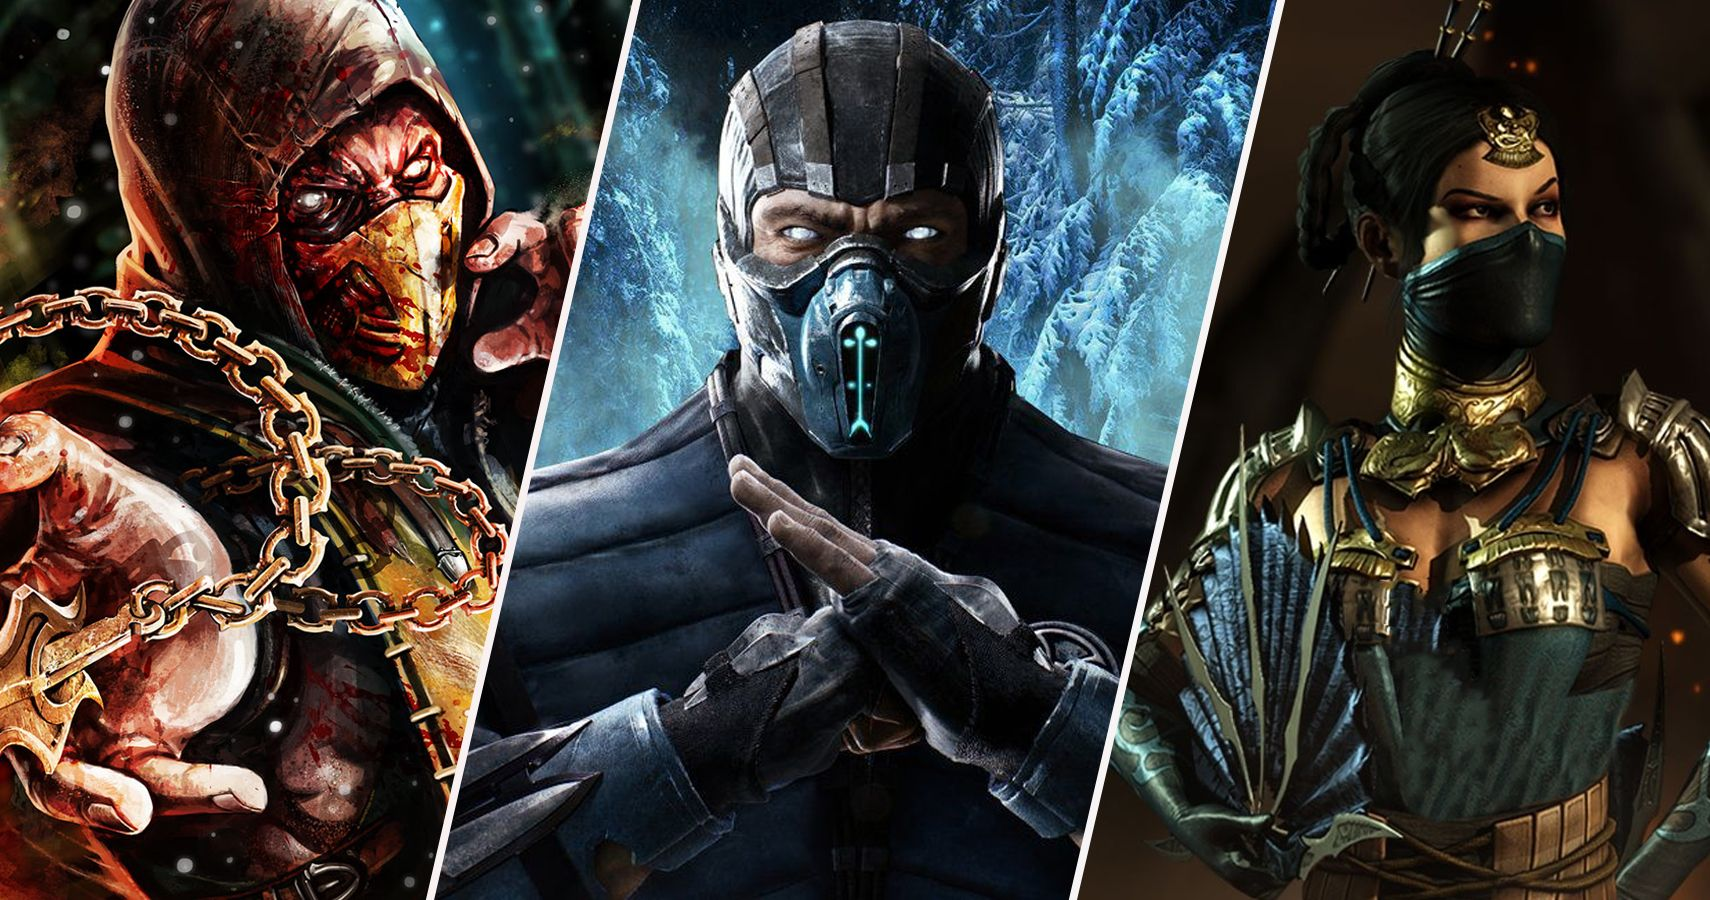 Mortal Kombat Characters From Weakest To Most Powerful